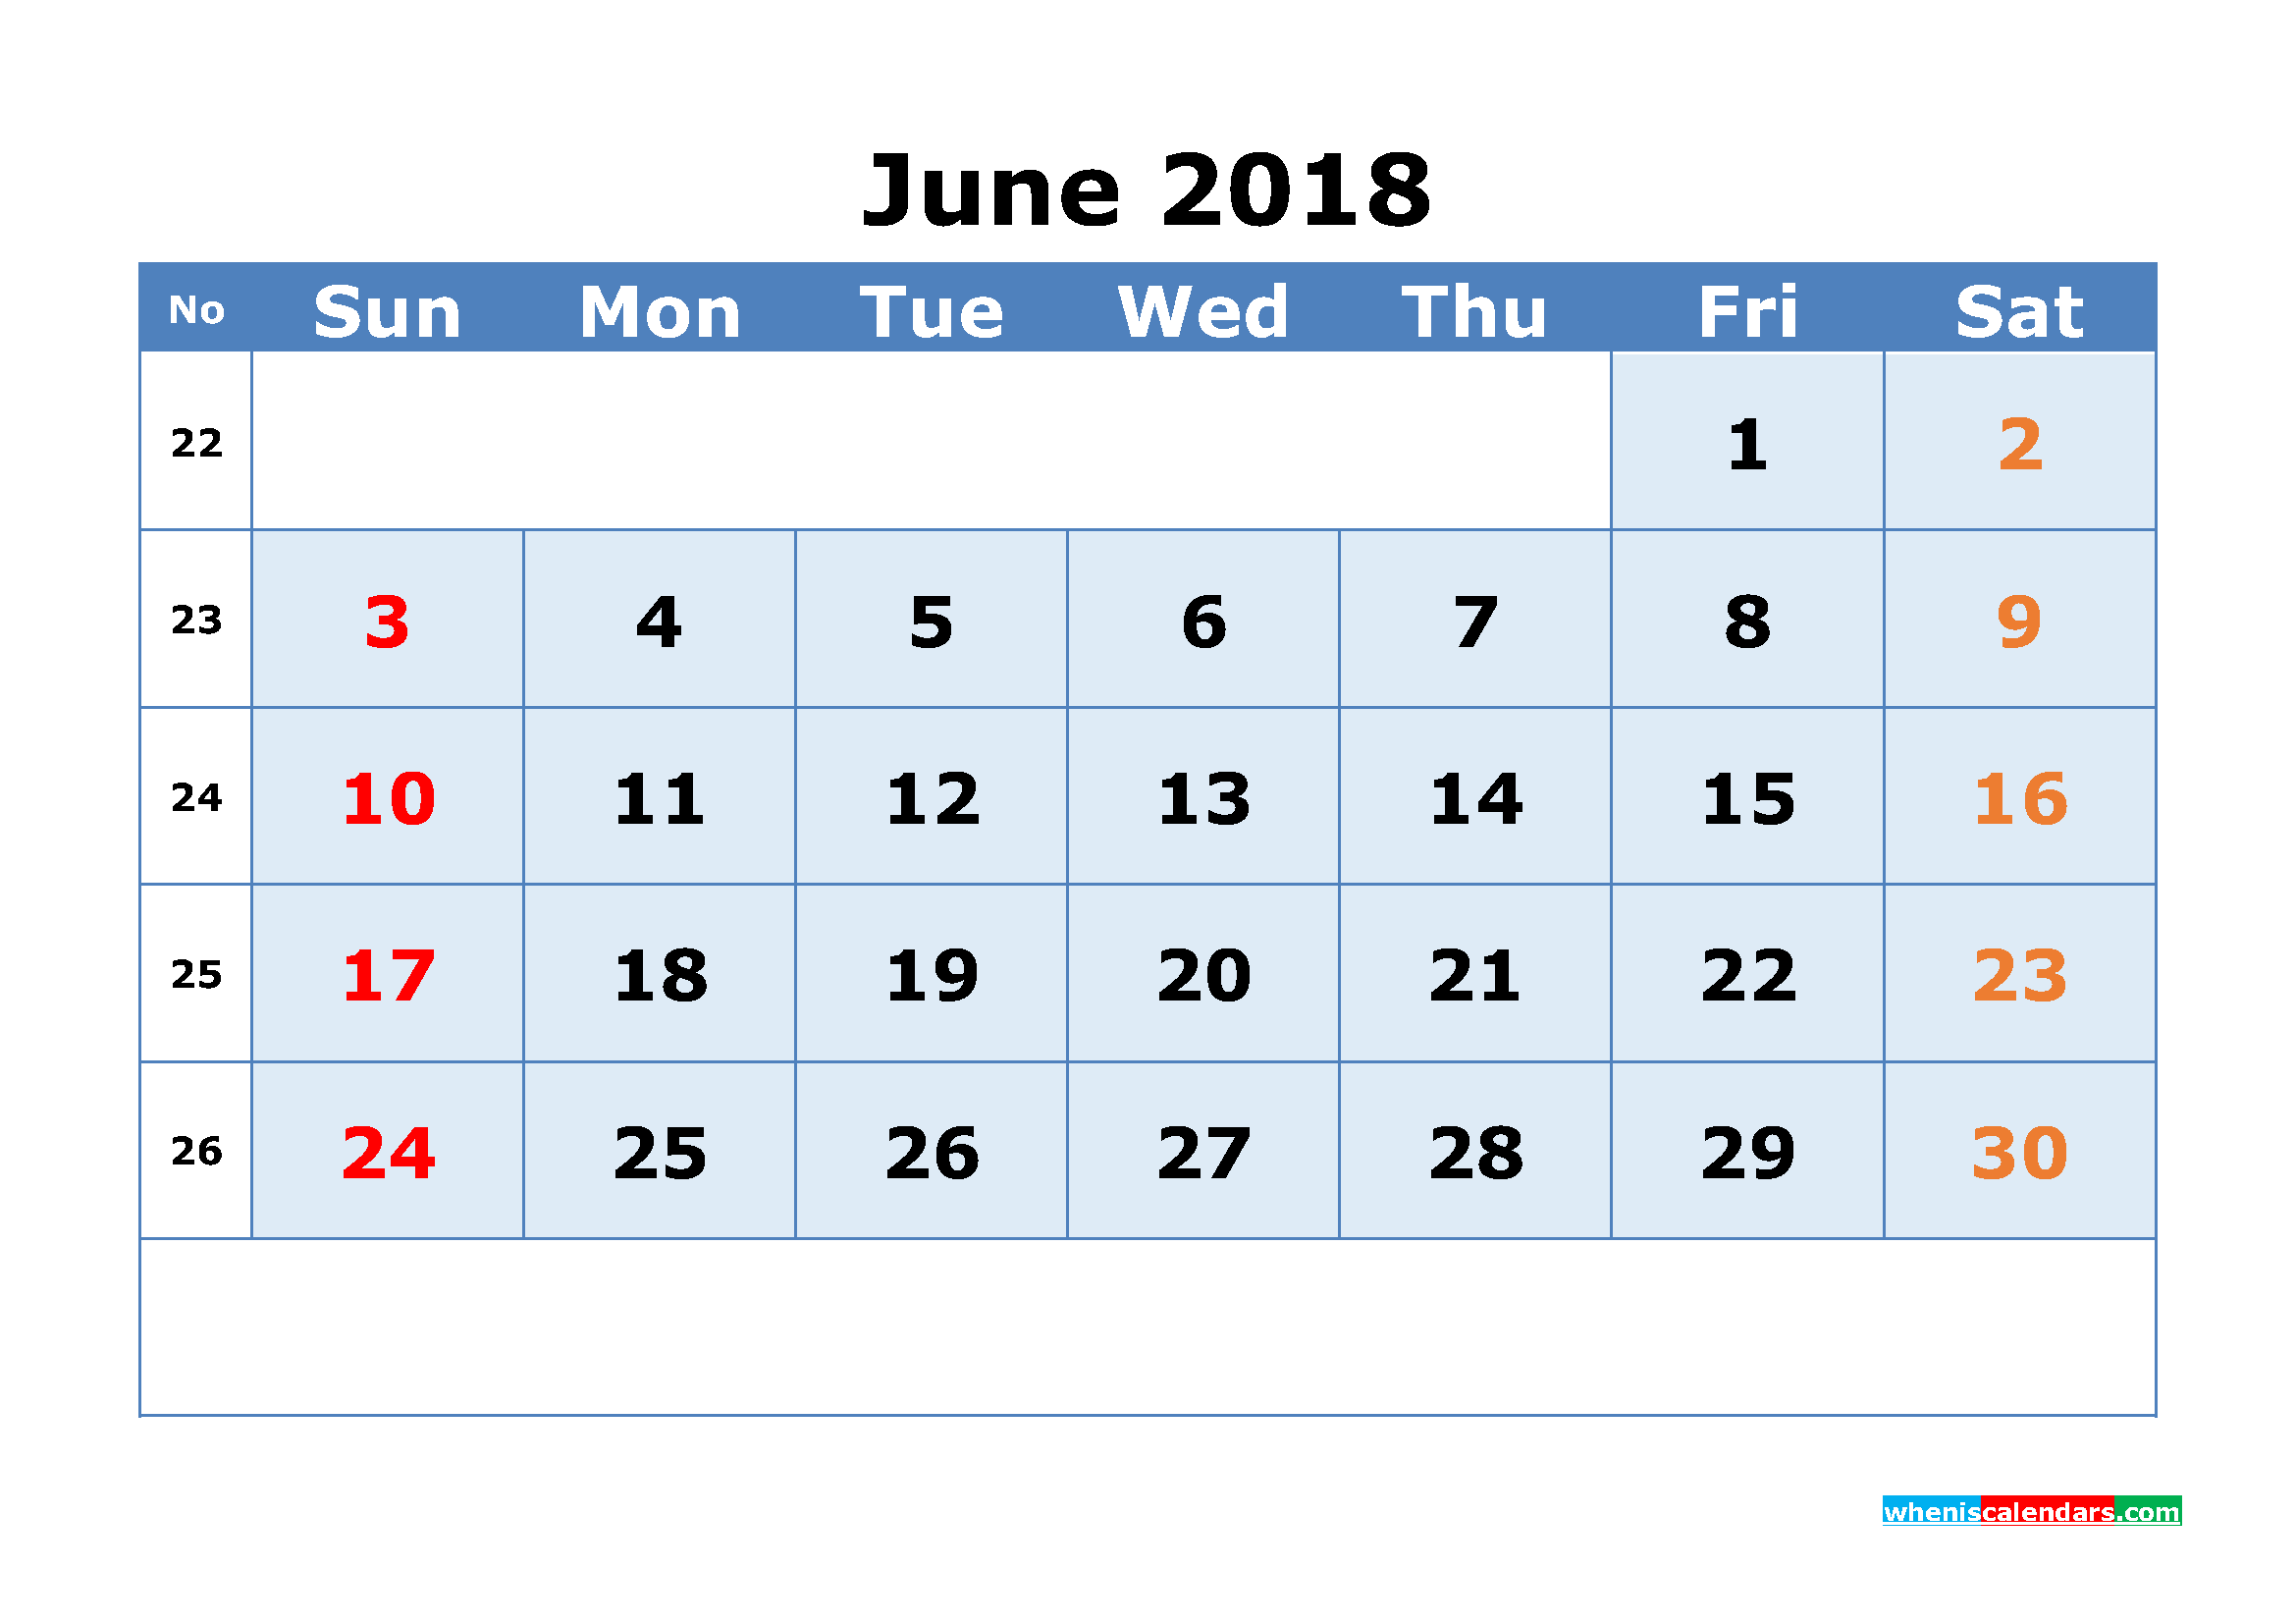 Printable Calendar June 2018 with Week Numbers as, Image